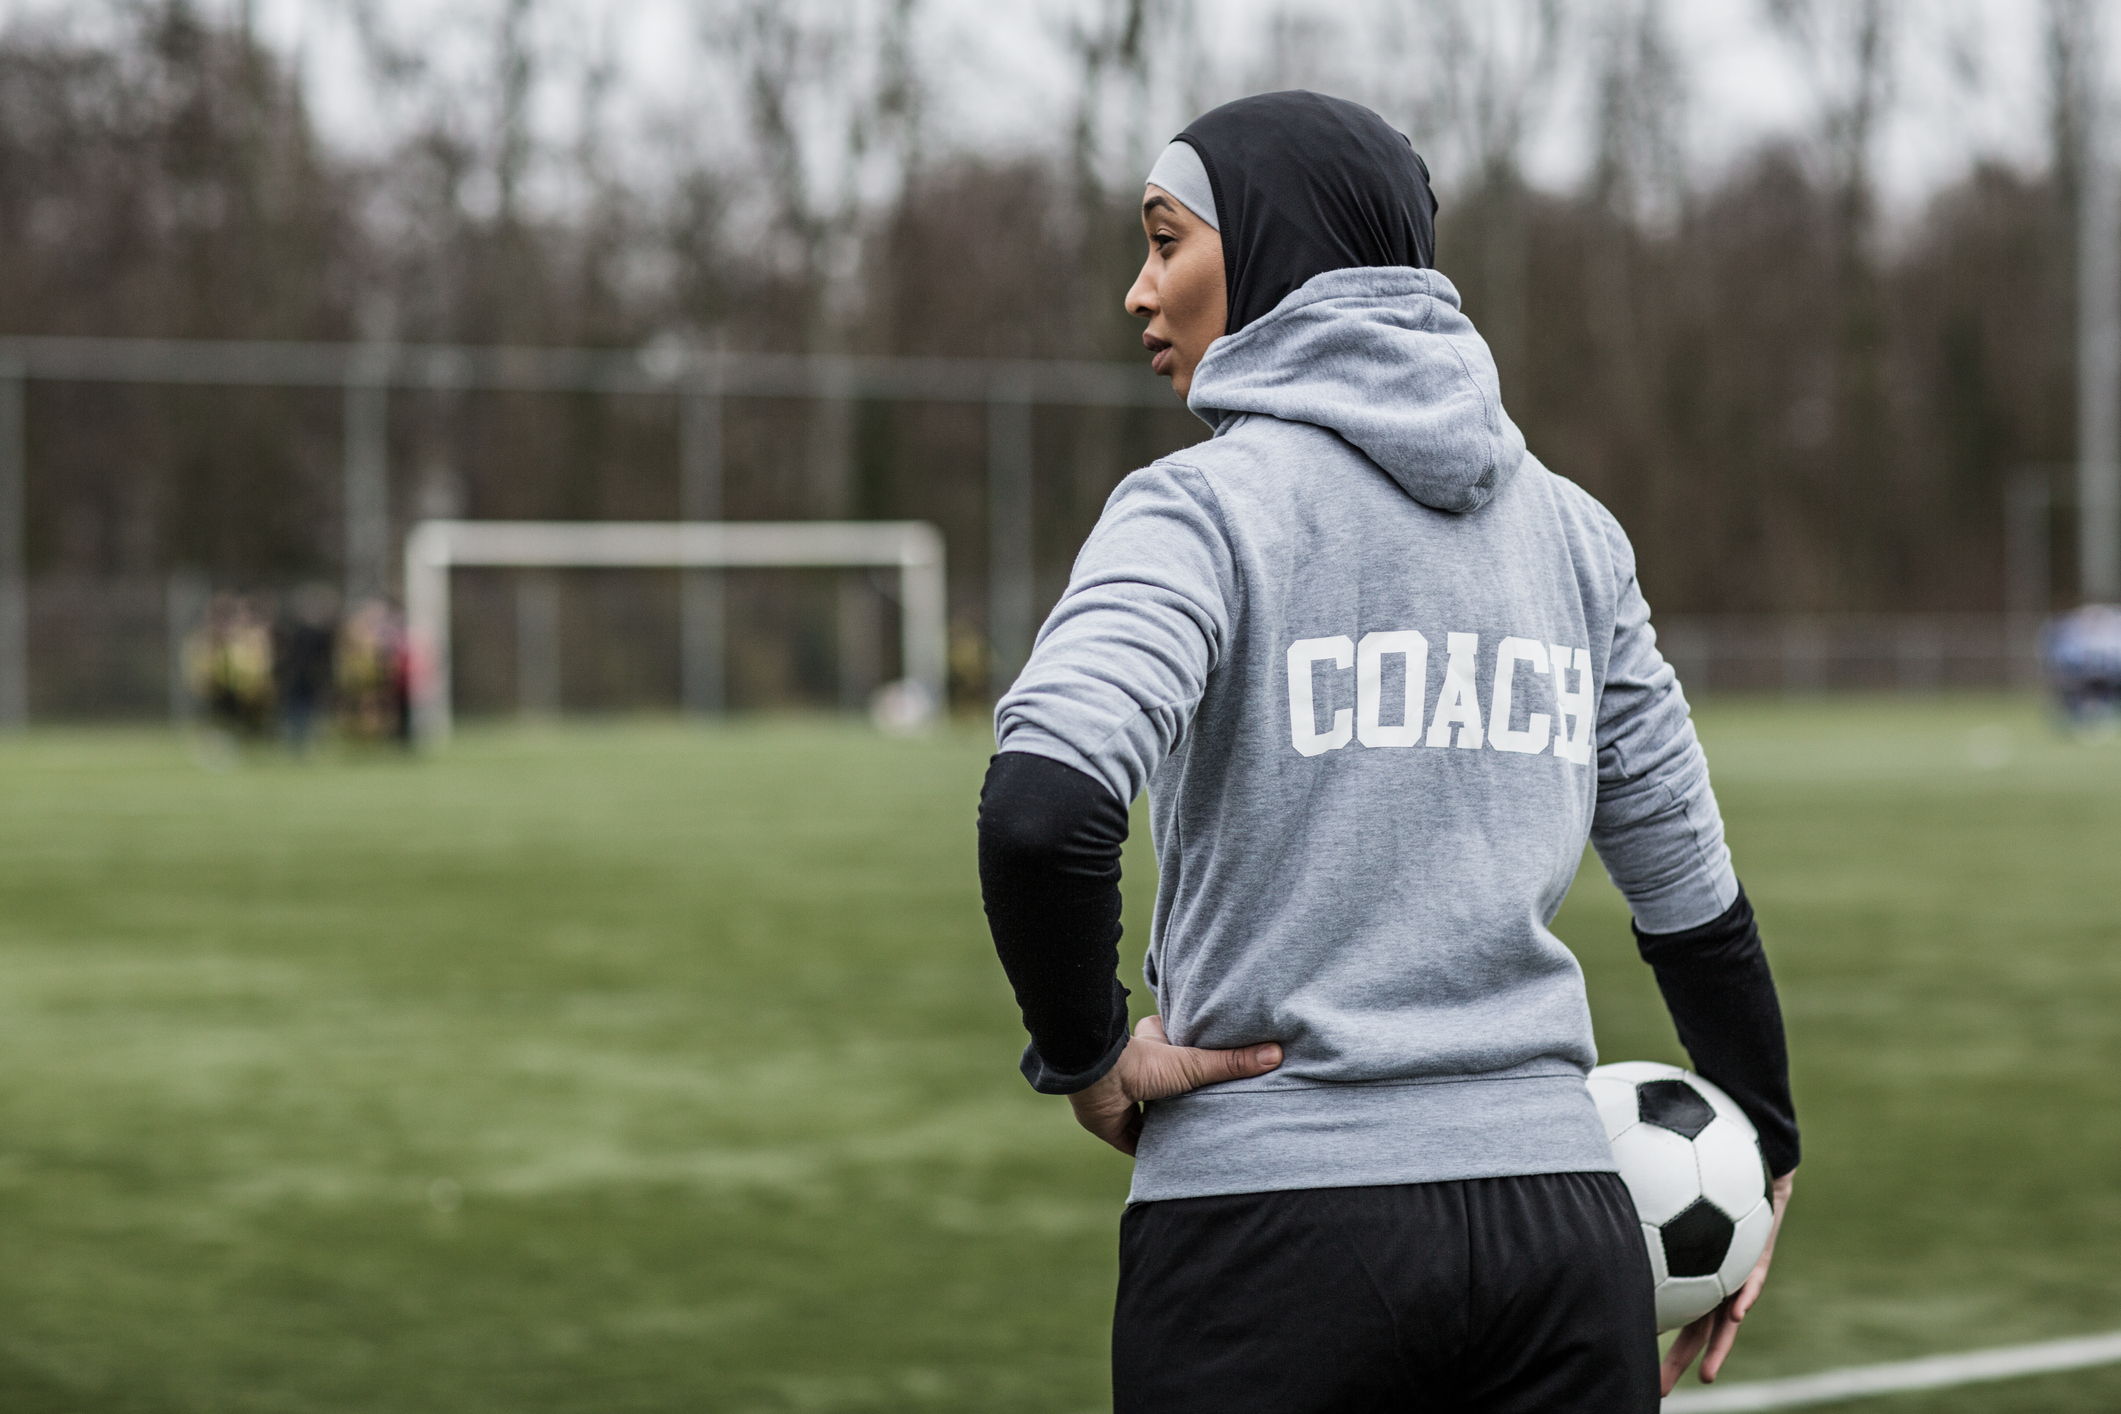 England Lionesses visit Muslimahs to encourage girls to play football